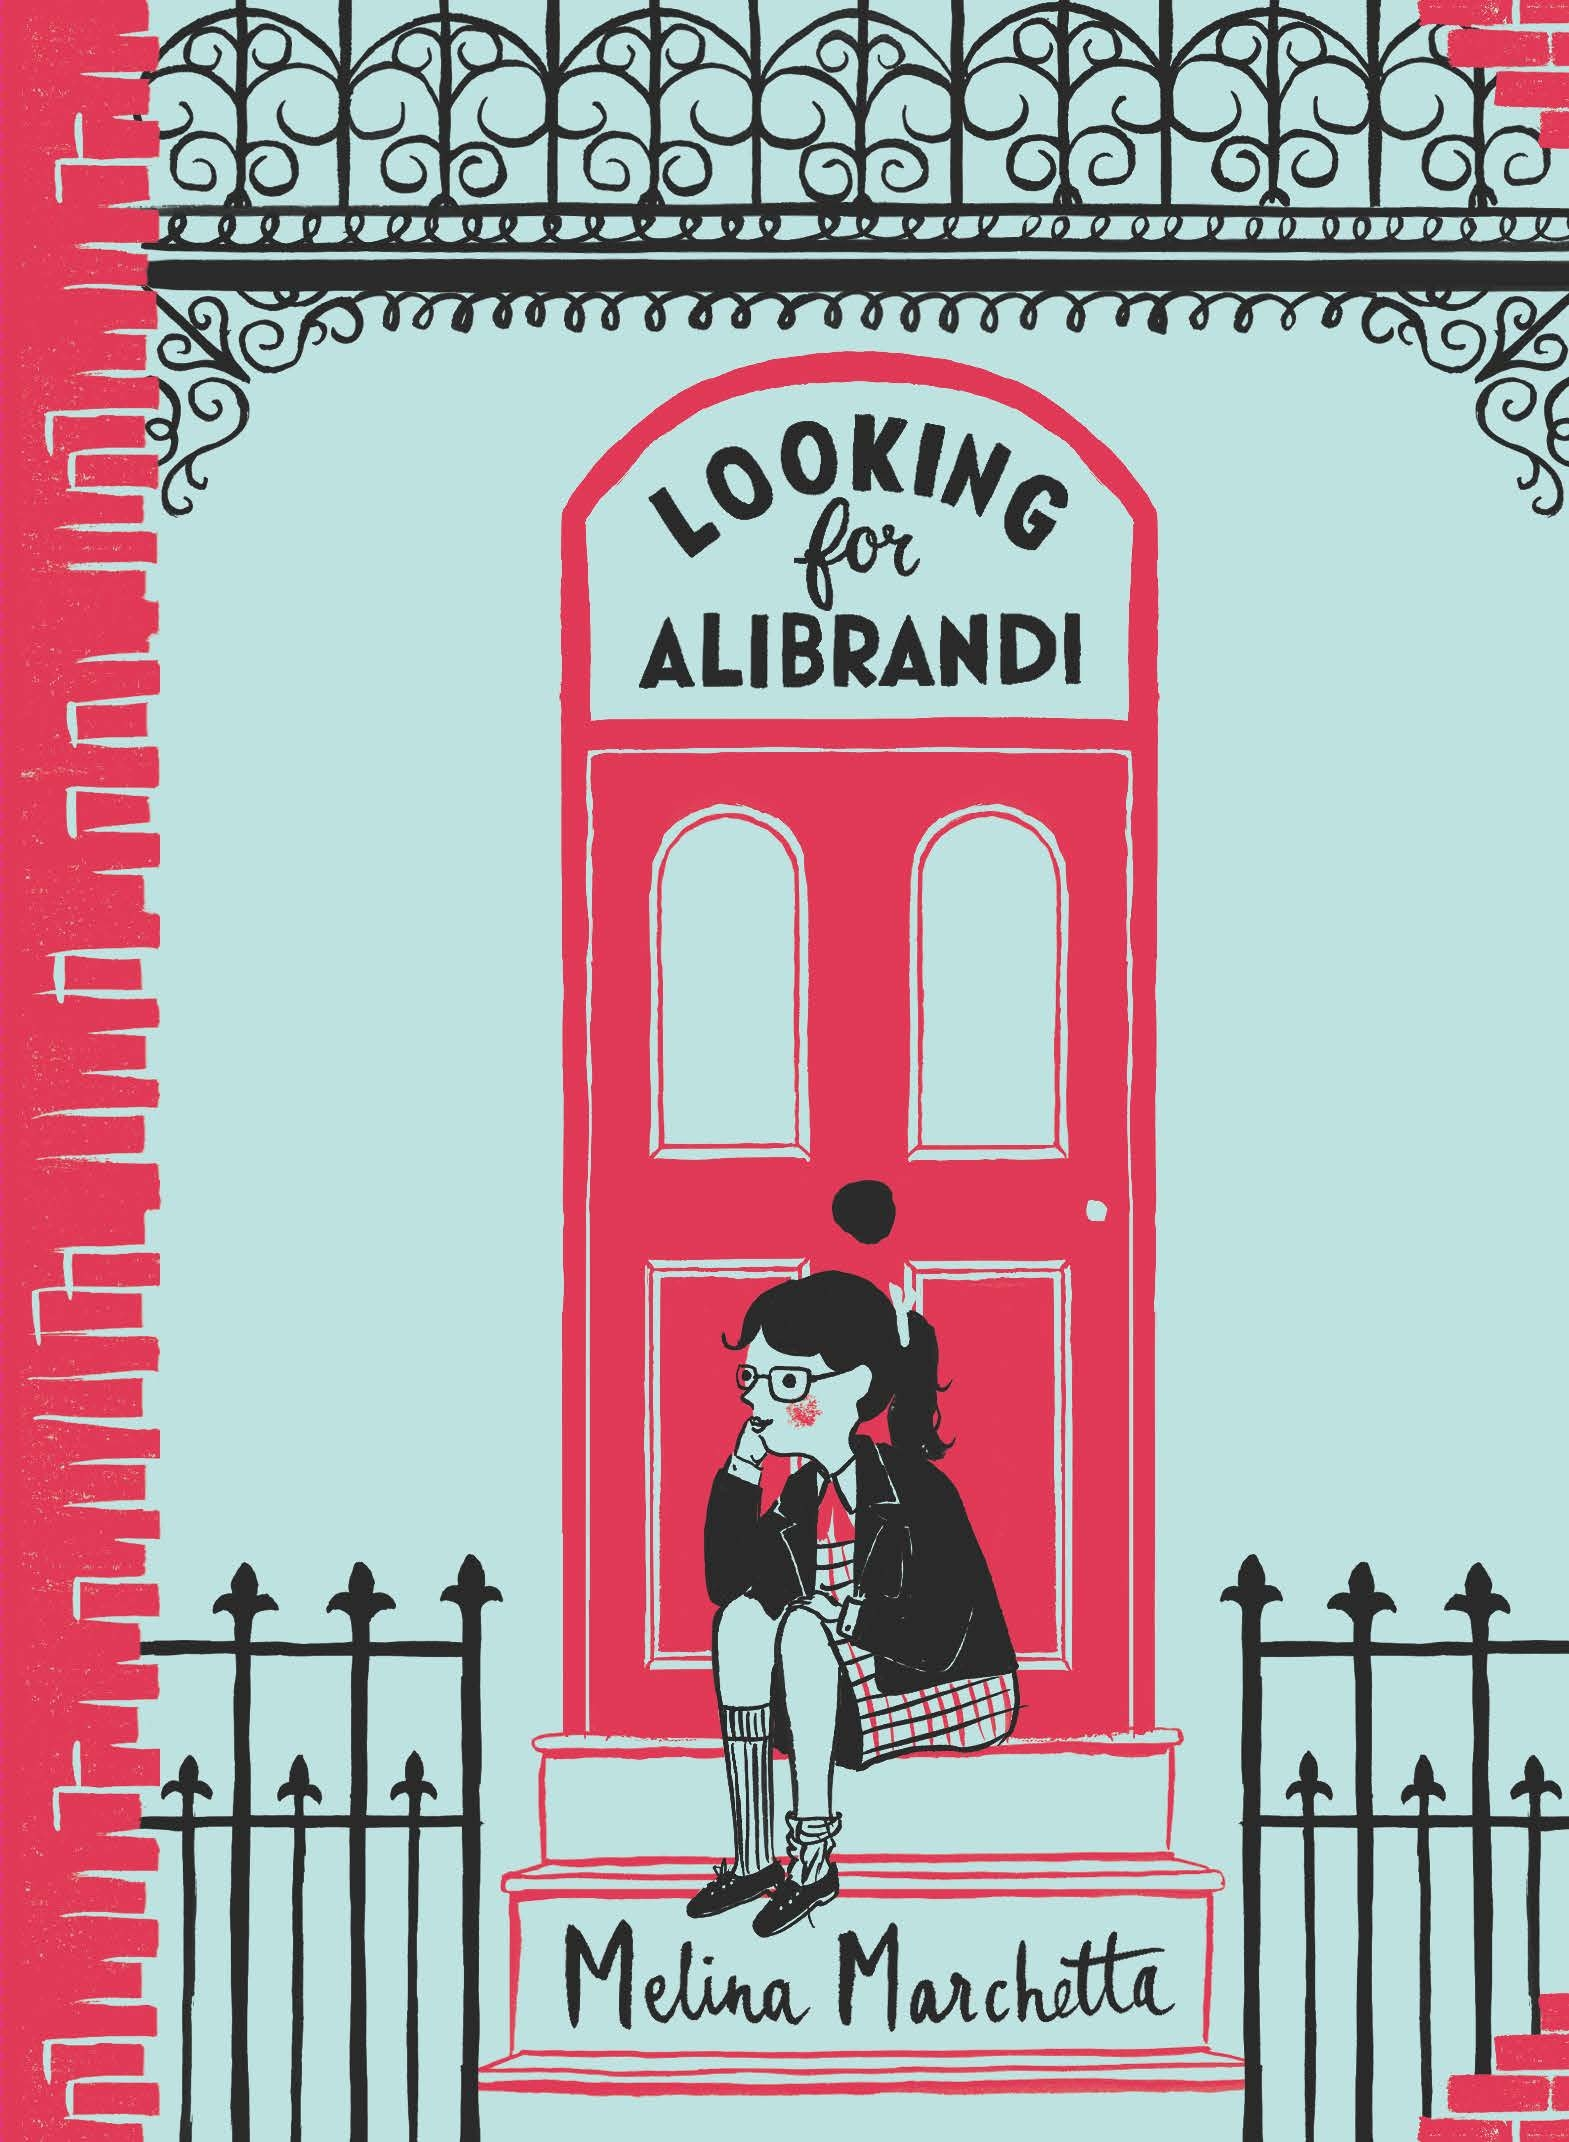 an analysis of the novel looking for alibrandi by melina marchetta Looking for alibrandi {1992} is a novel written by melina marchetta, which presents to us the internal conflict that immigrant children face in a multicultural society.